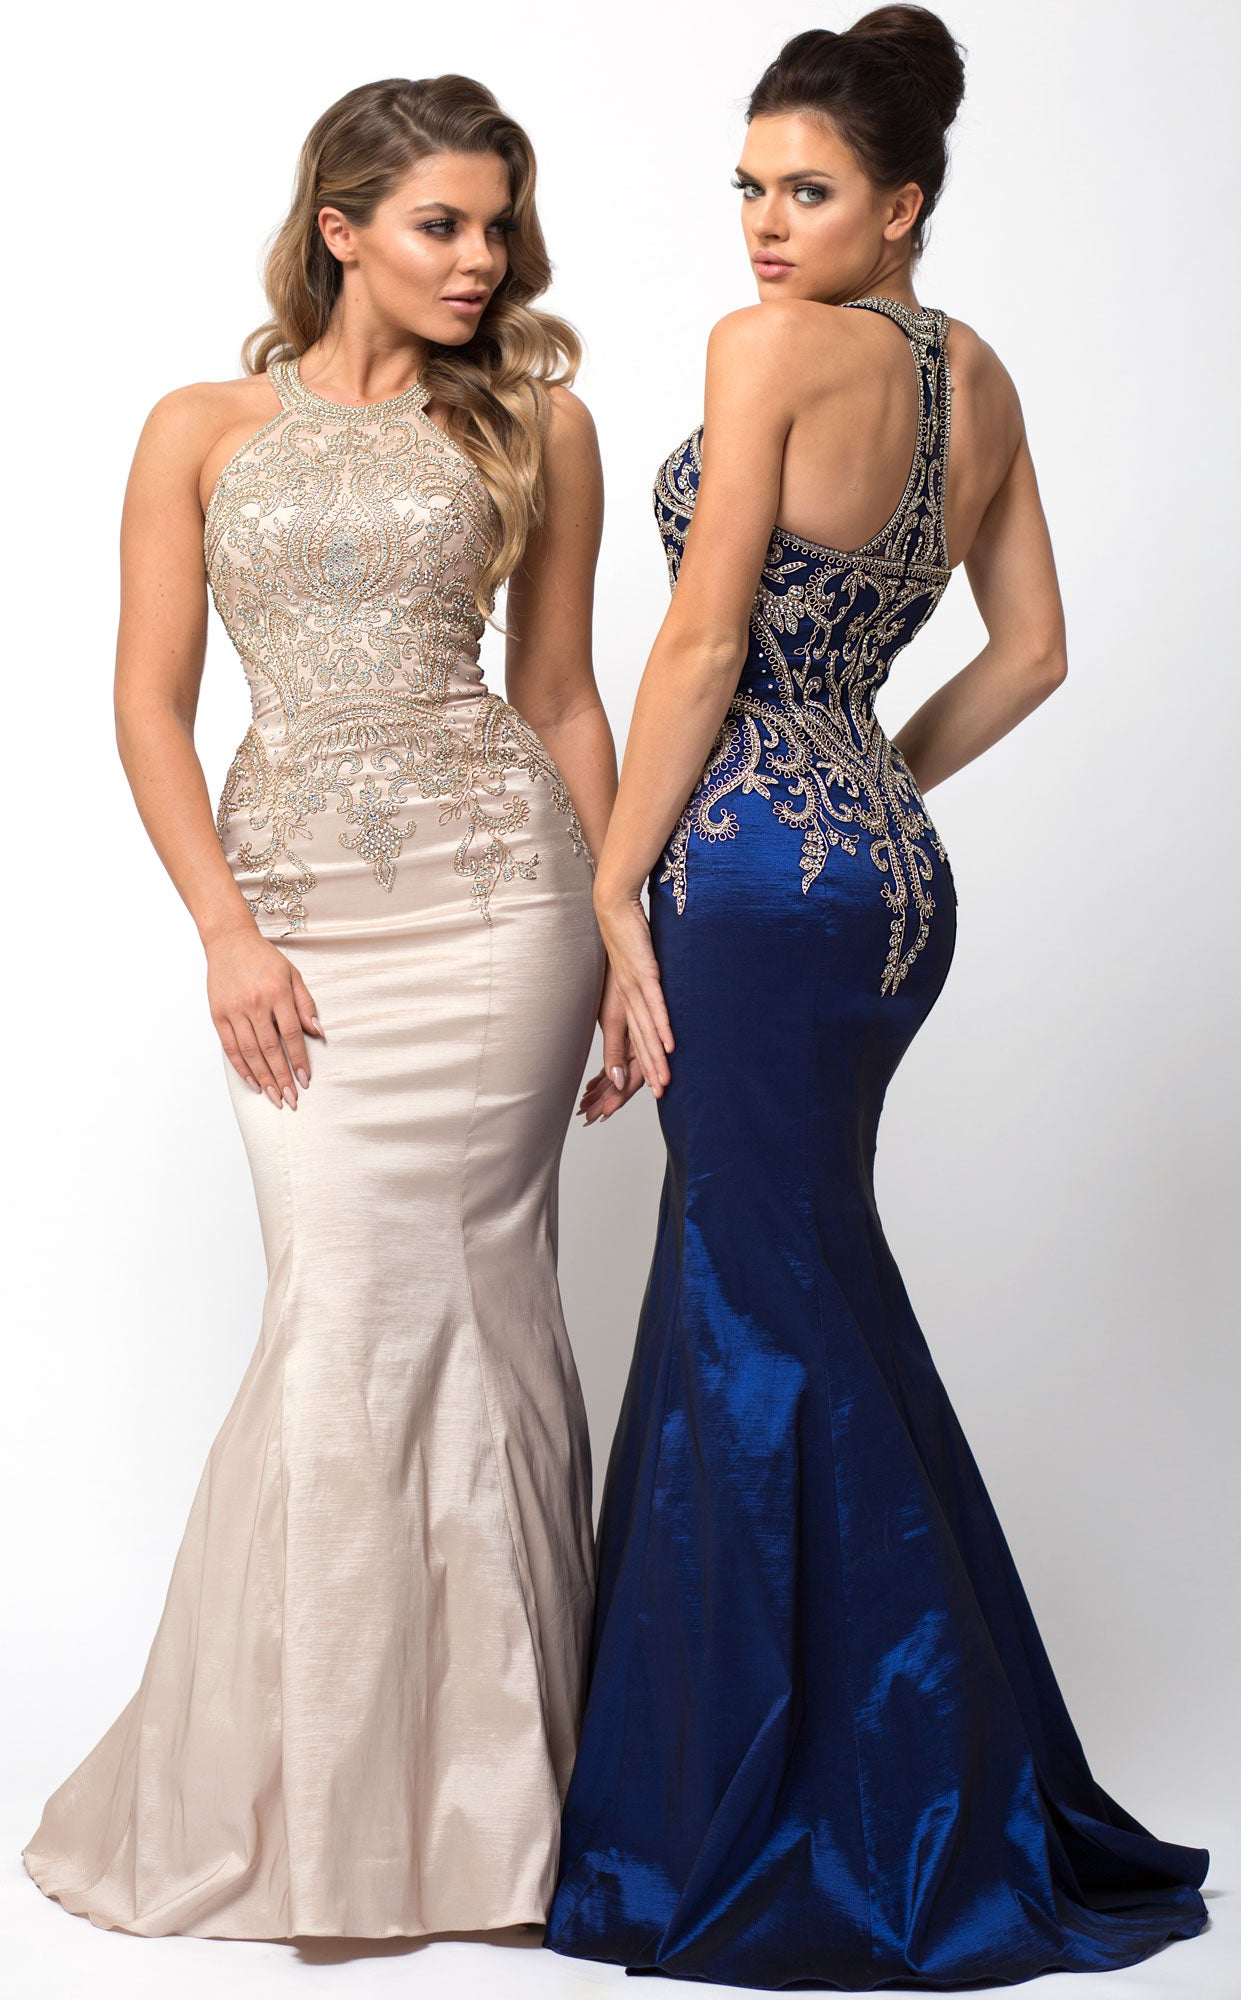 Main image of Embellished Bodice Round Neck Fit-n-flare Long Prom Dress